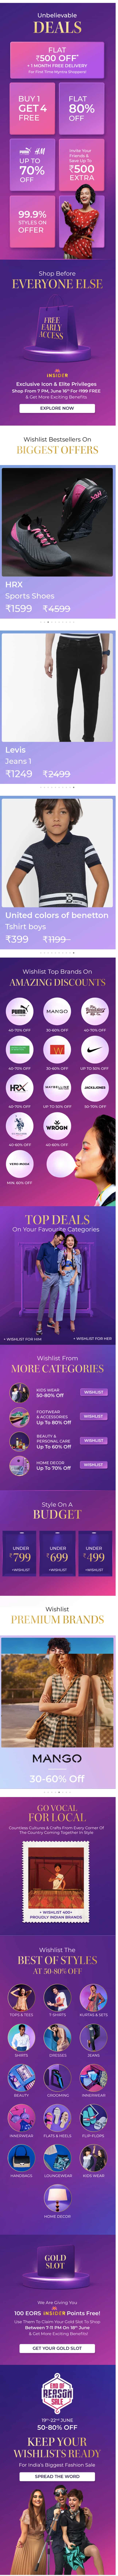 Myntra End Of Reason Sale Jun2 2020 Offers